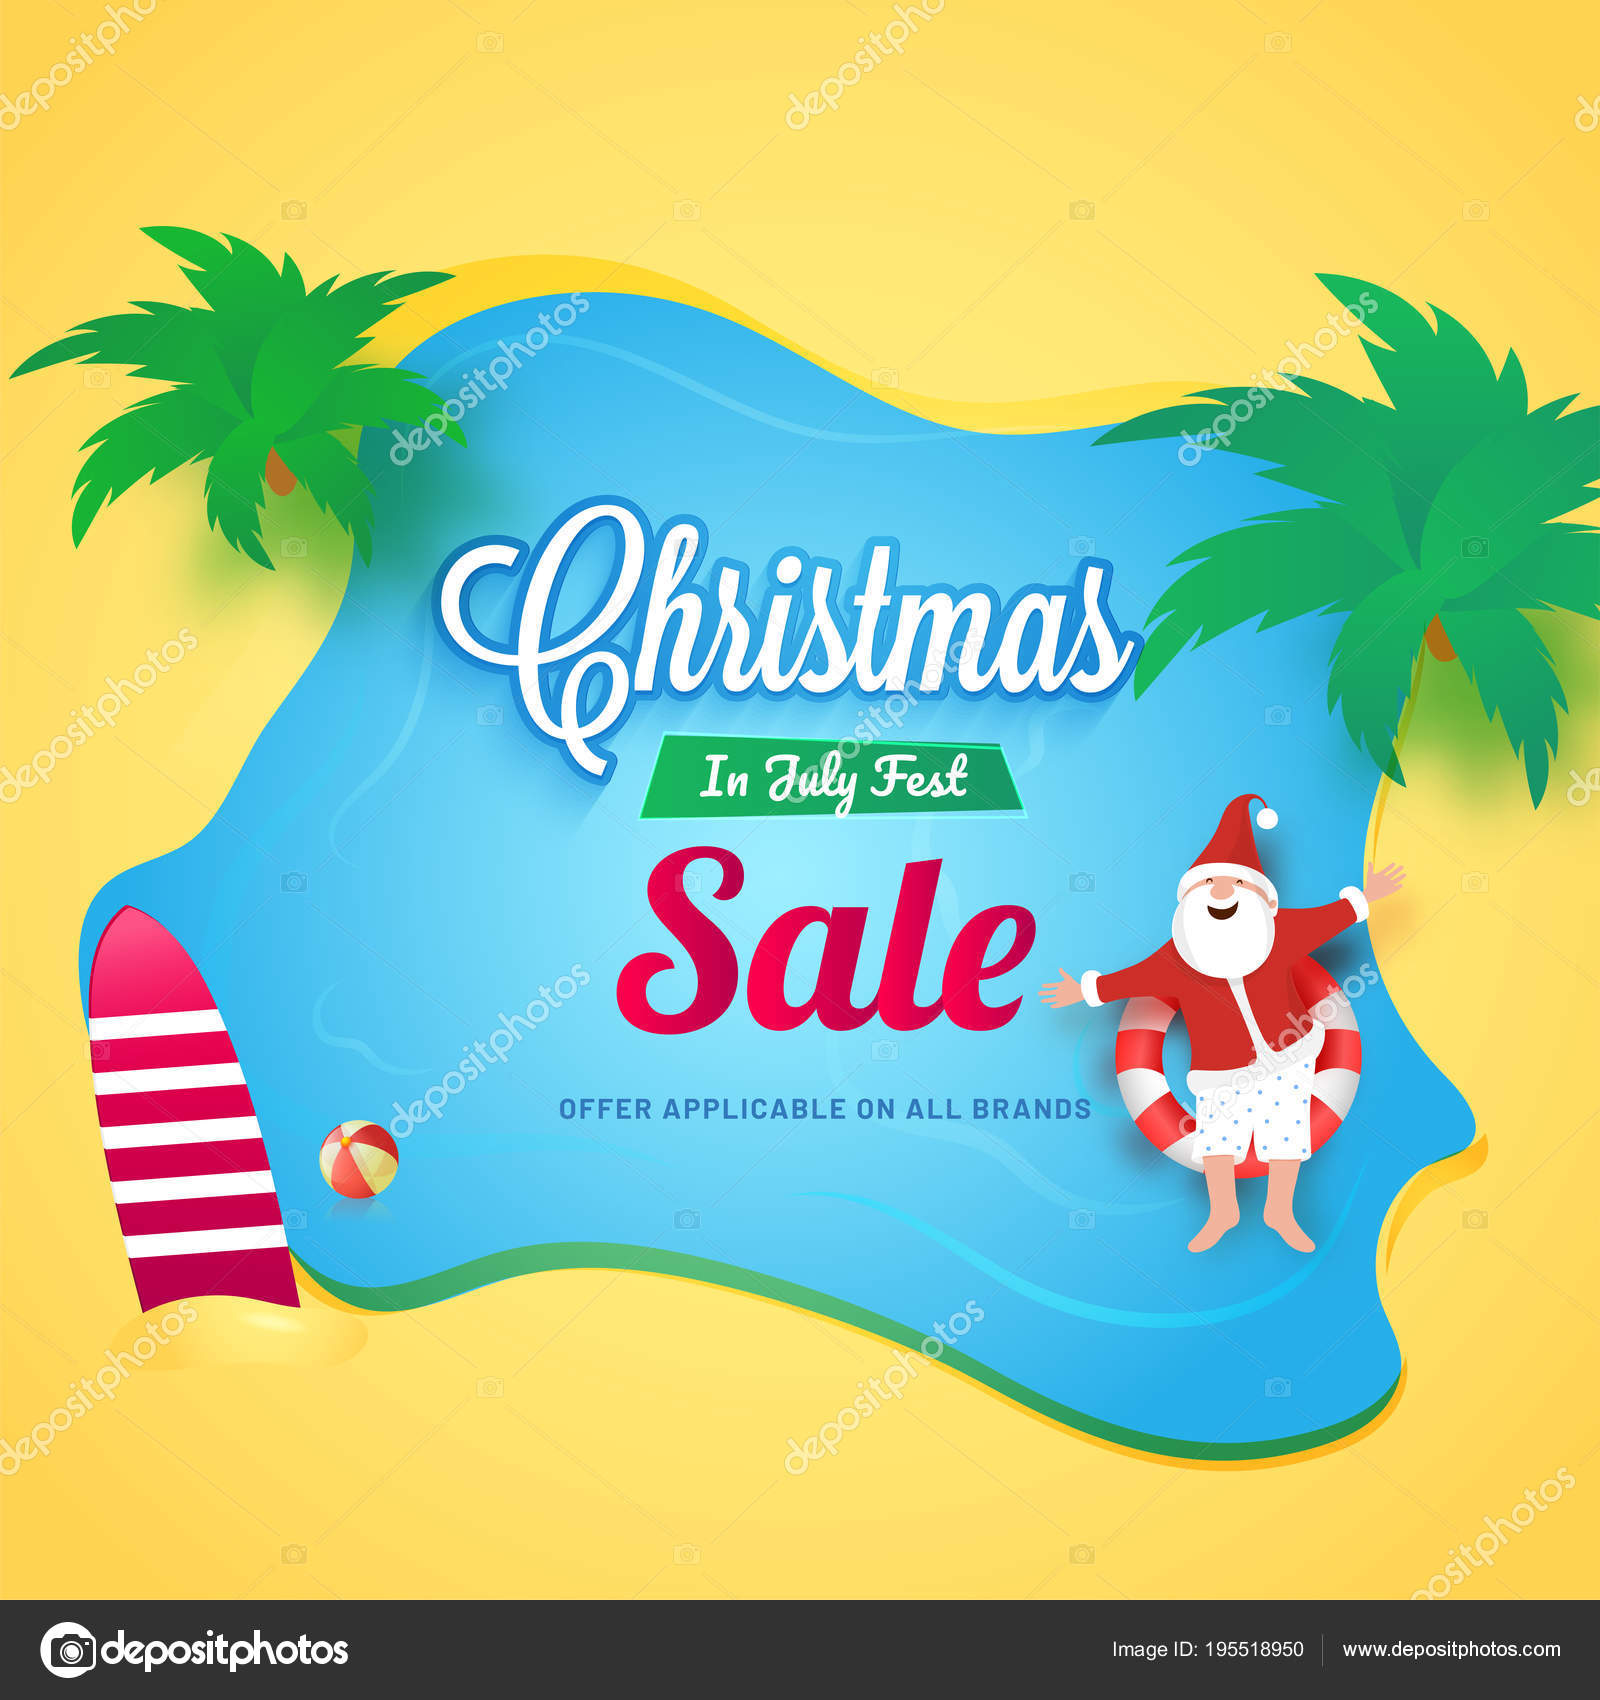 Christmas In July Sale Images.Christmas In July Flyer Christmas In July Fest Sale